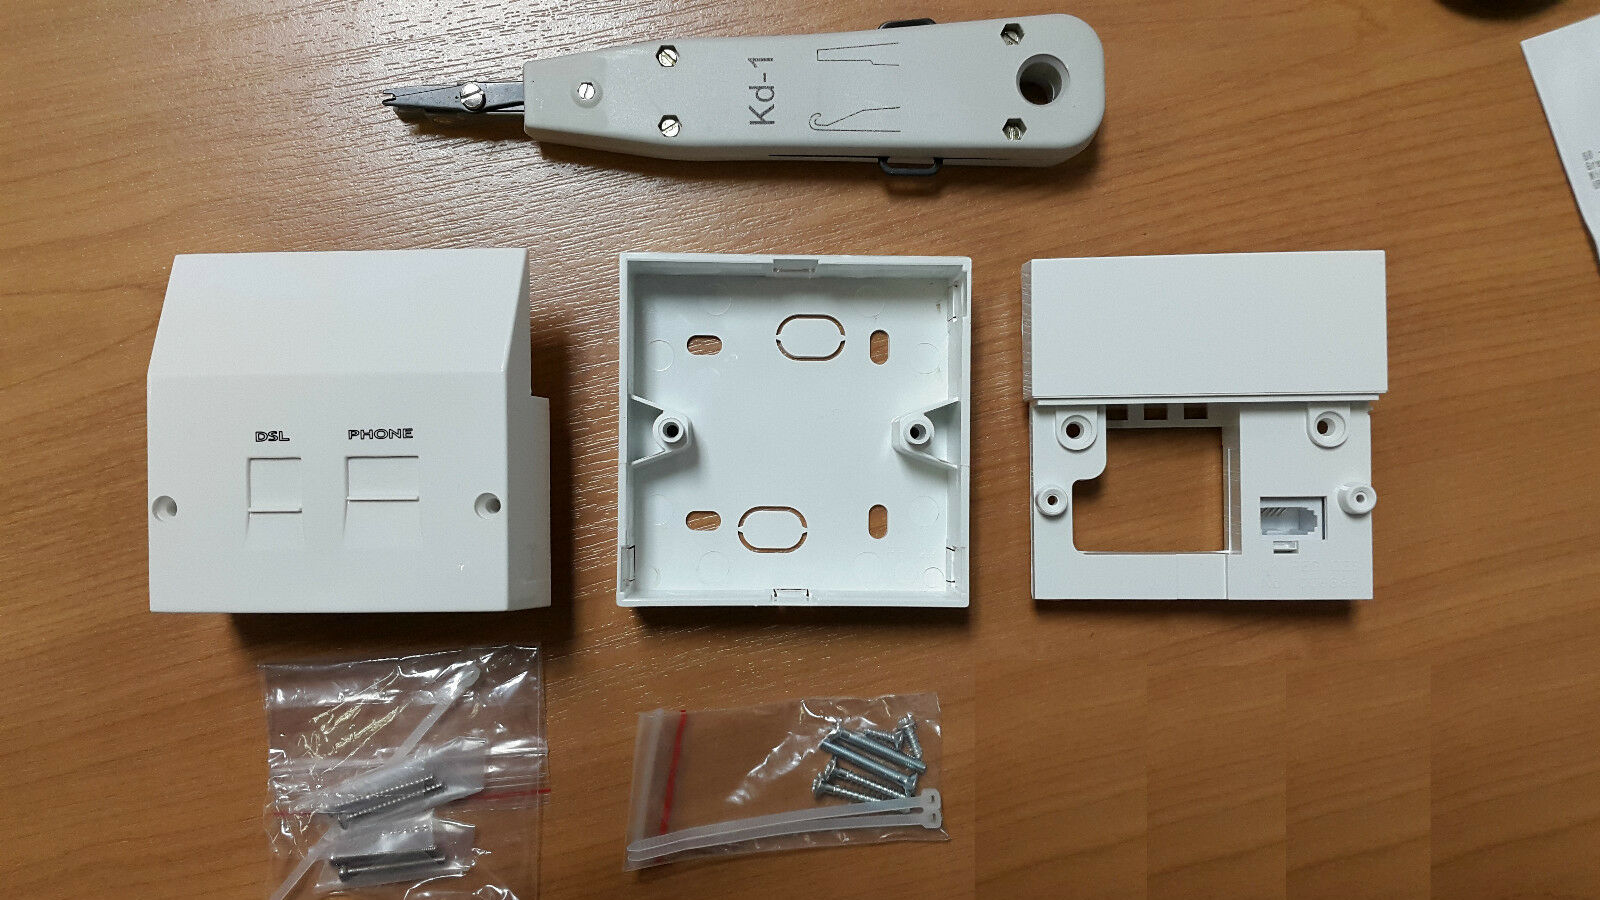 Genuine Telephone Nte5 Master Socket Dsl Adsl Phone Filter Box Idc Wiring An Tool Bt Style 1 Of 3free Shipping